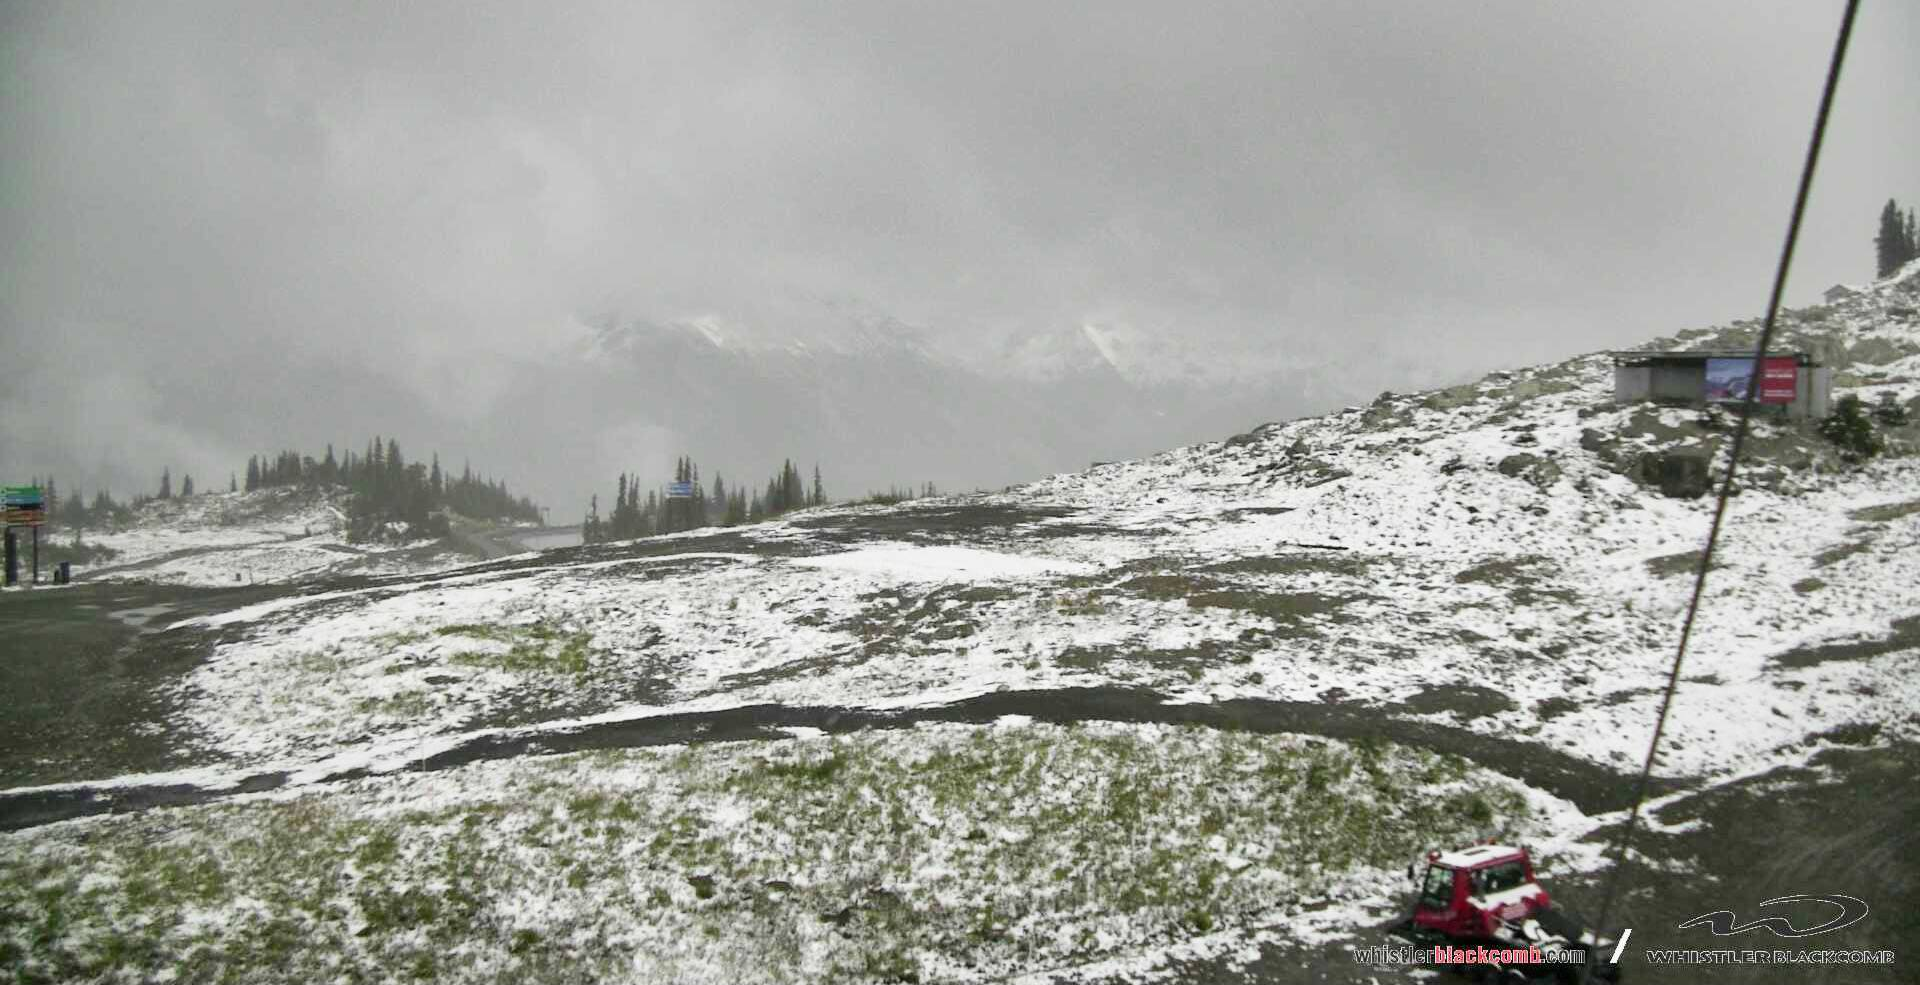 Snow on Whistler Blackcomb as of September 18, 2017 (Whistler Blackcomb)